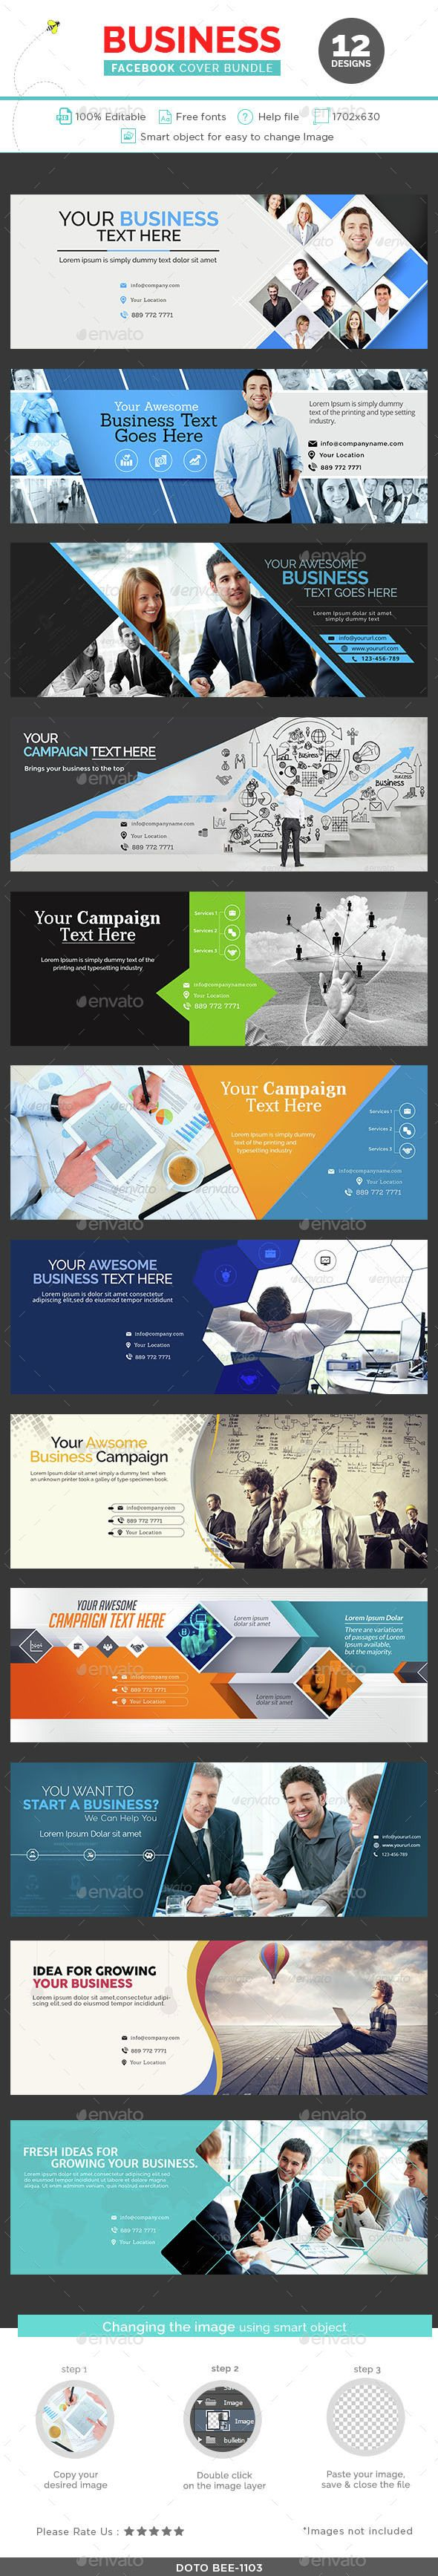 Business Facebook Cover Bundle - 12 Designs Templates PSD. Download here: http://graphicriver.net/item/business-facebook-cover-bundle-12-designs/14637558?ref=ksioks